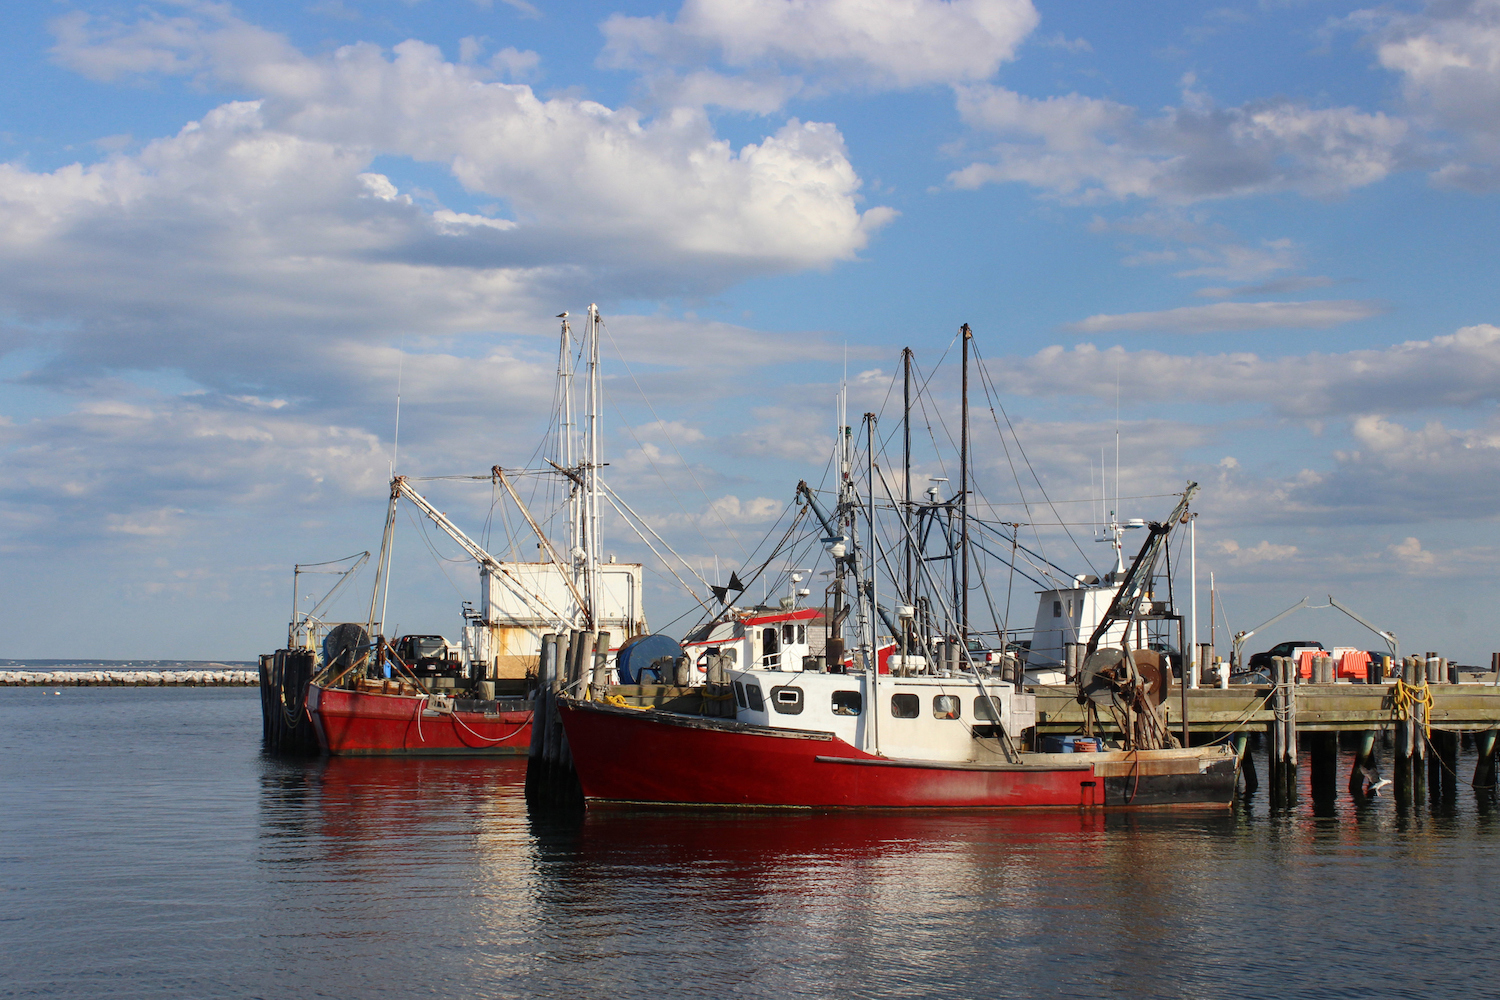 Red fishing boats docked